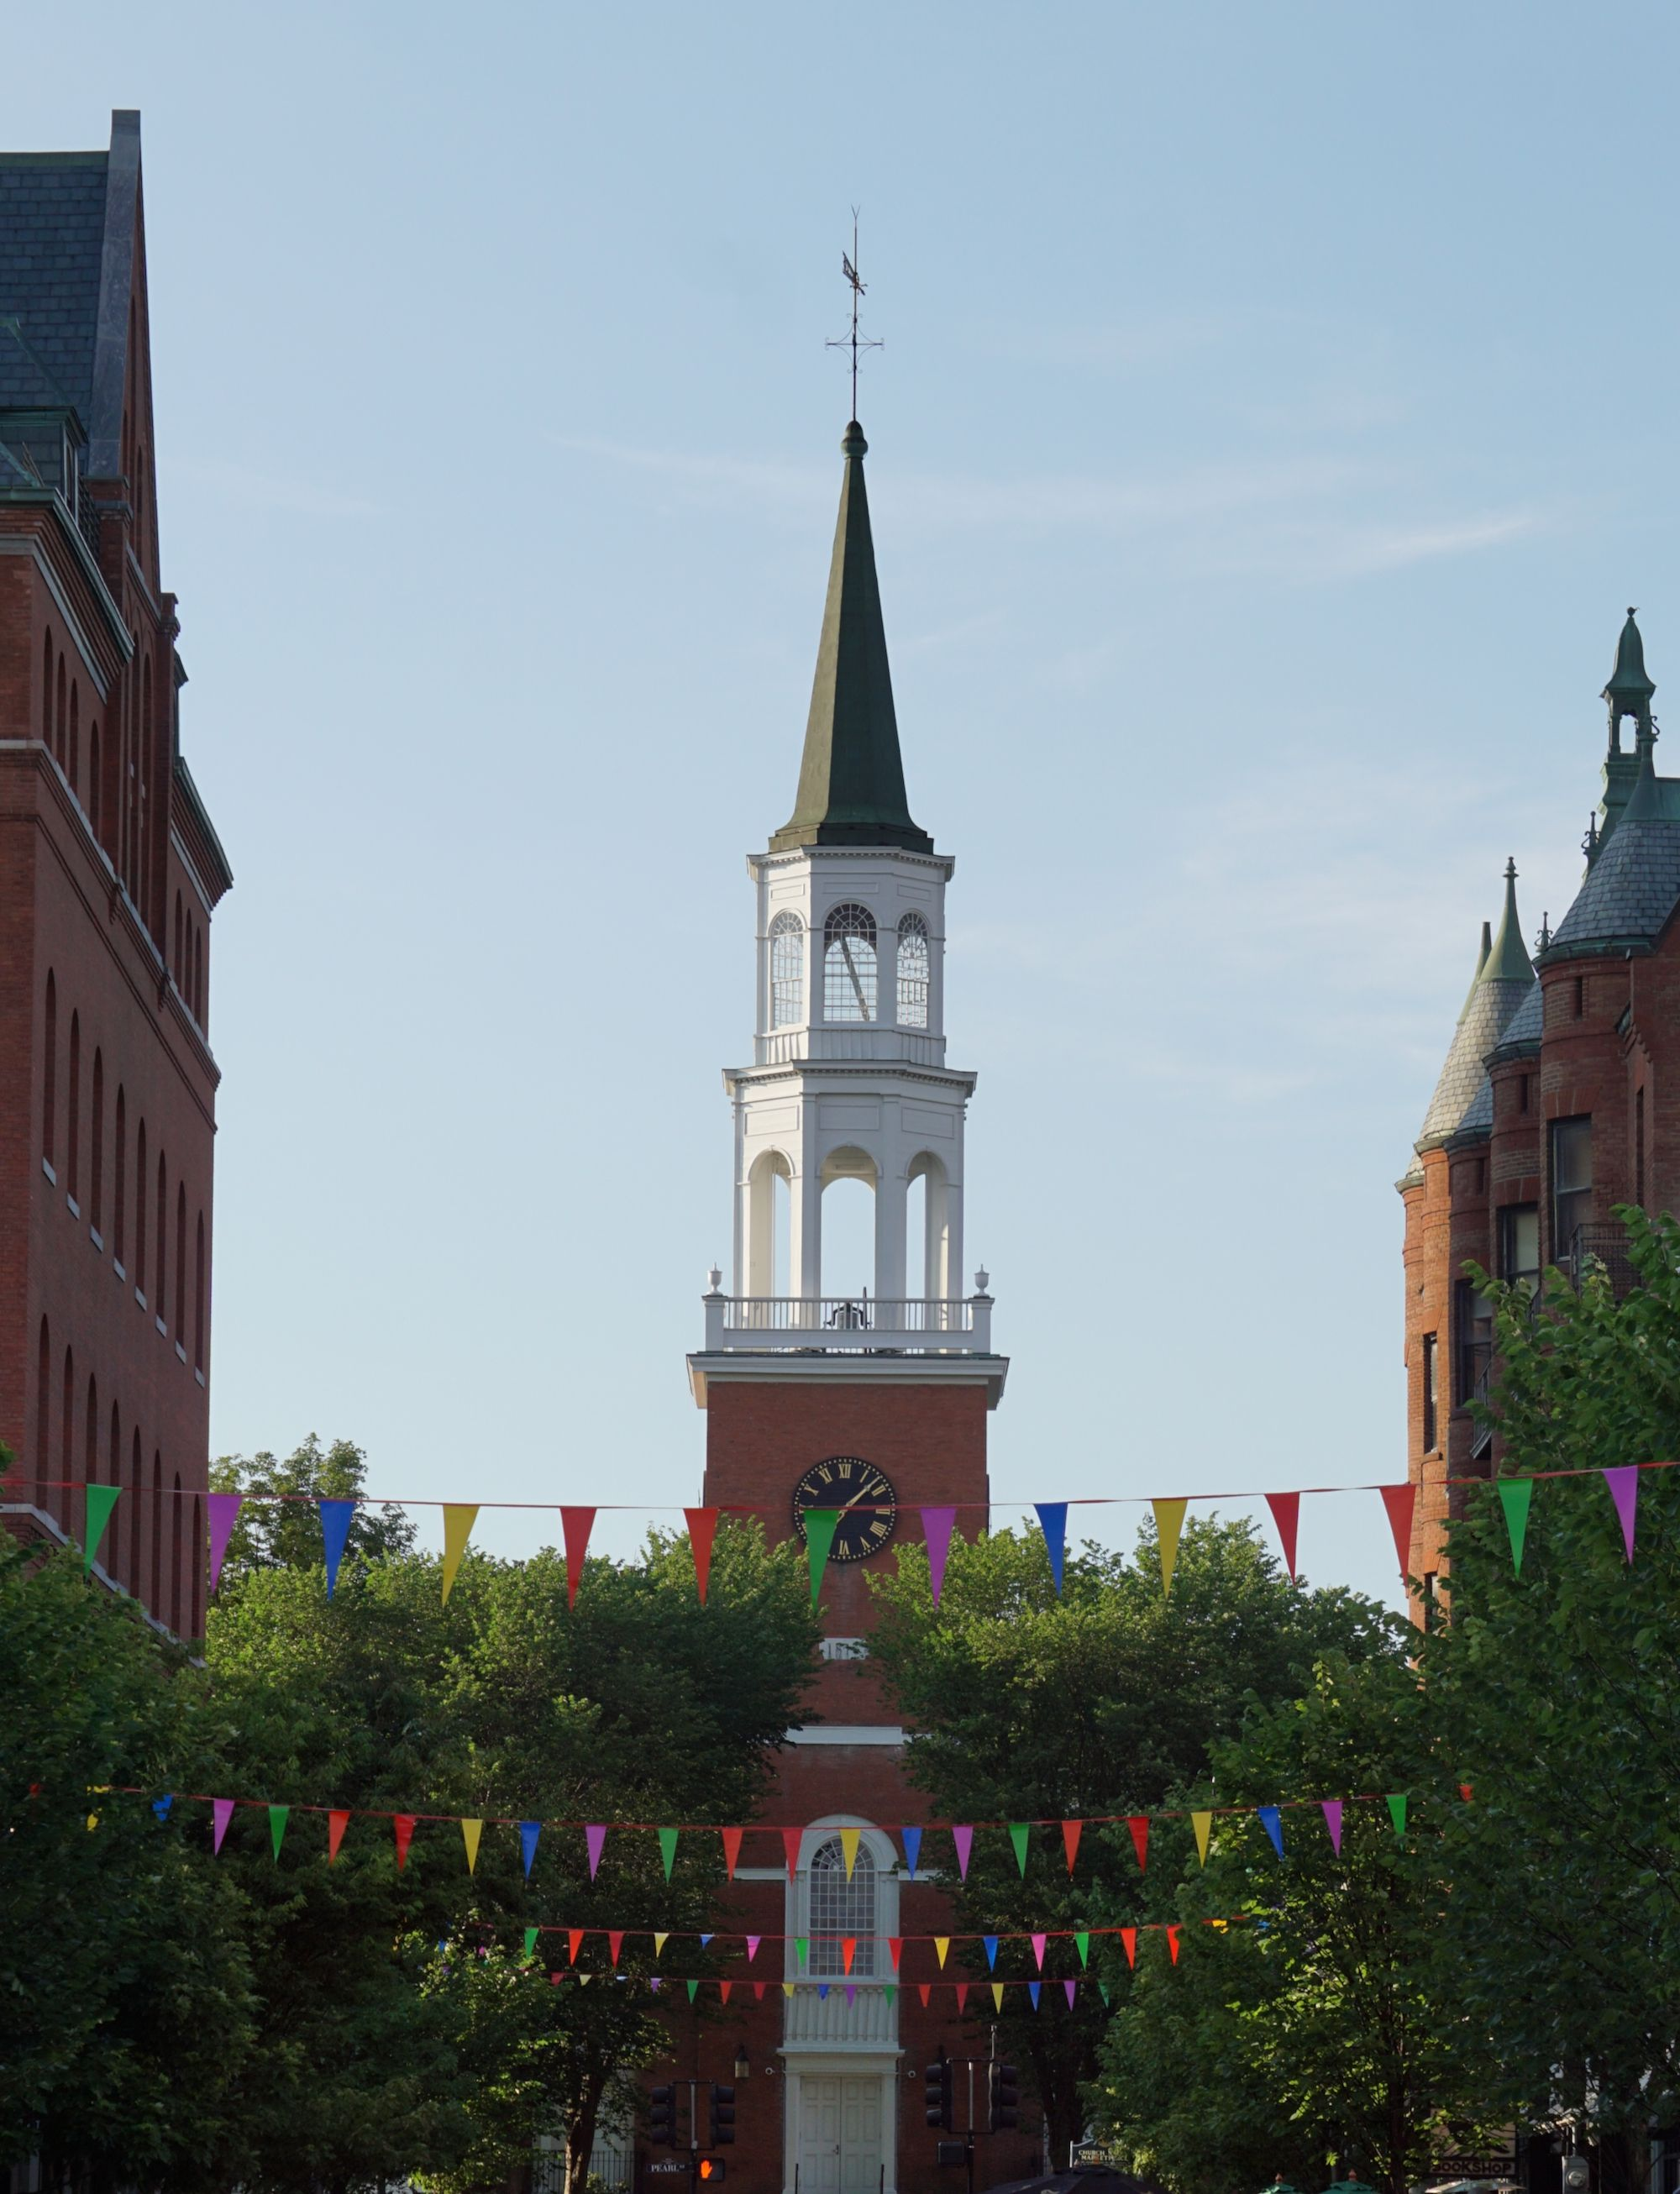 One of Burlington's iconic sights, the Masonic Building in the city's downtown district.